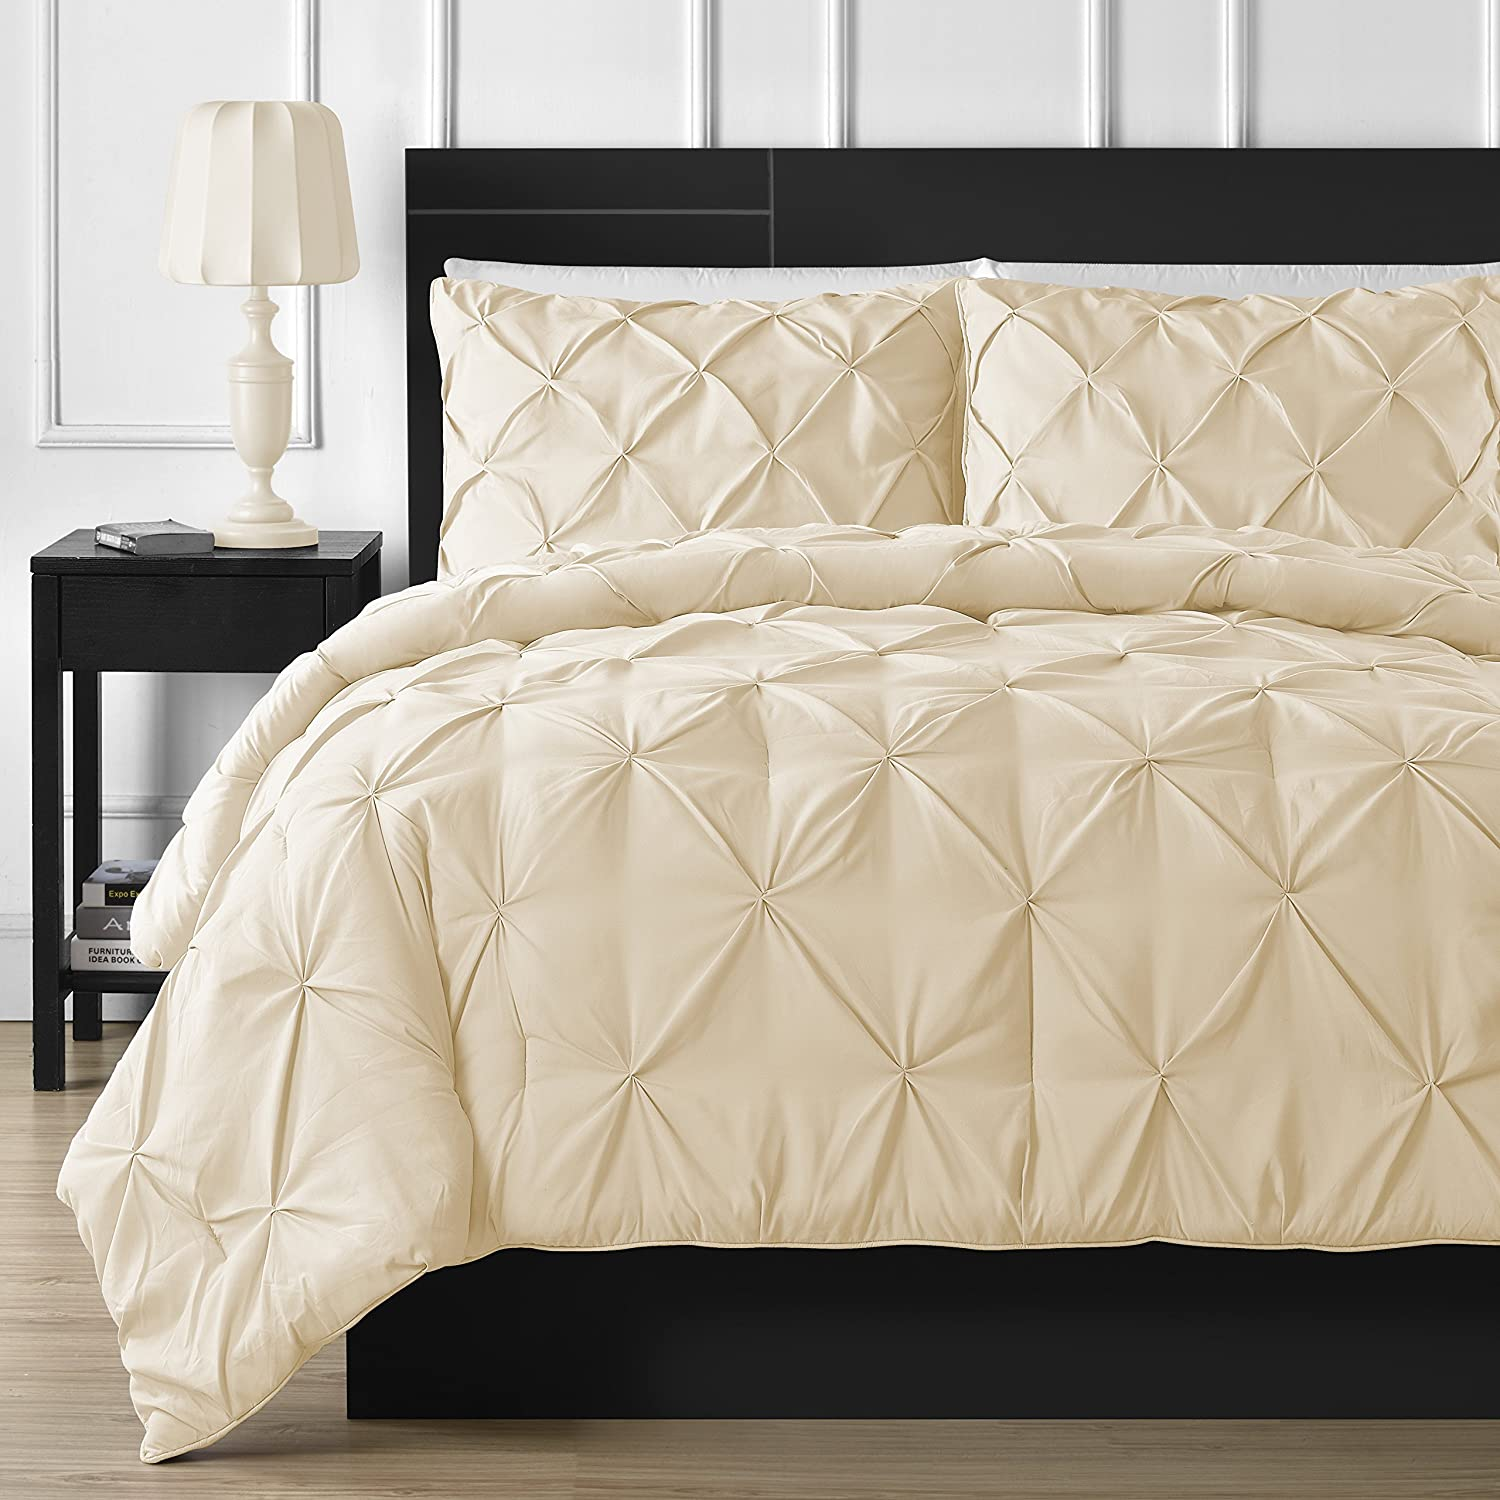 Beige Bedding Sets And Comforters Ease Bedding With Style